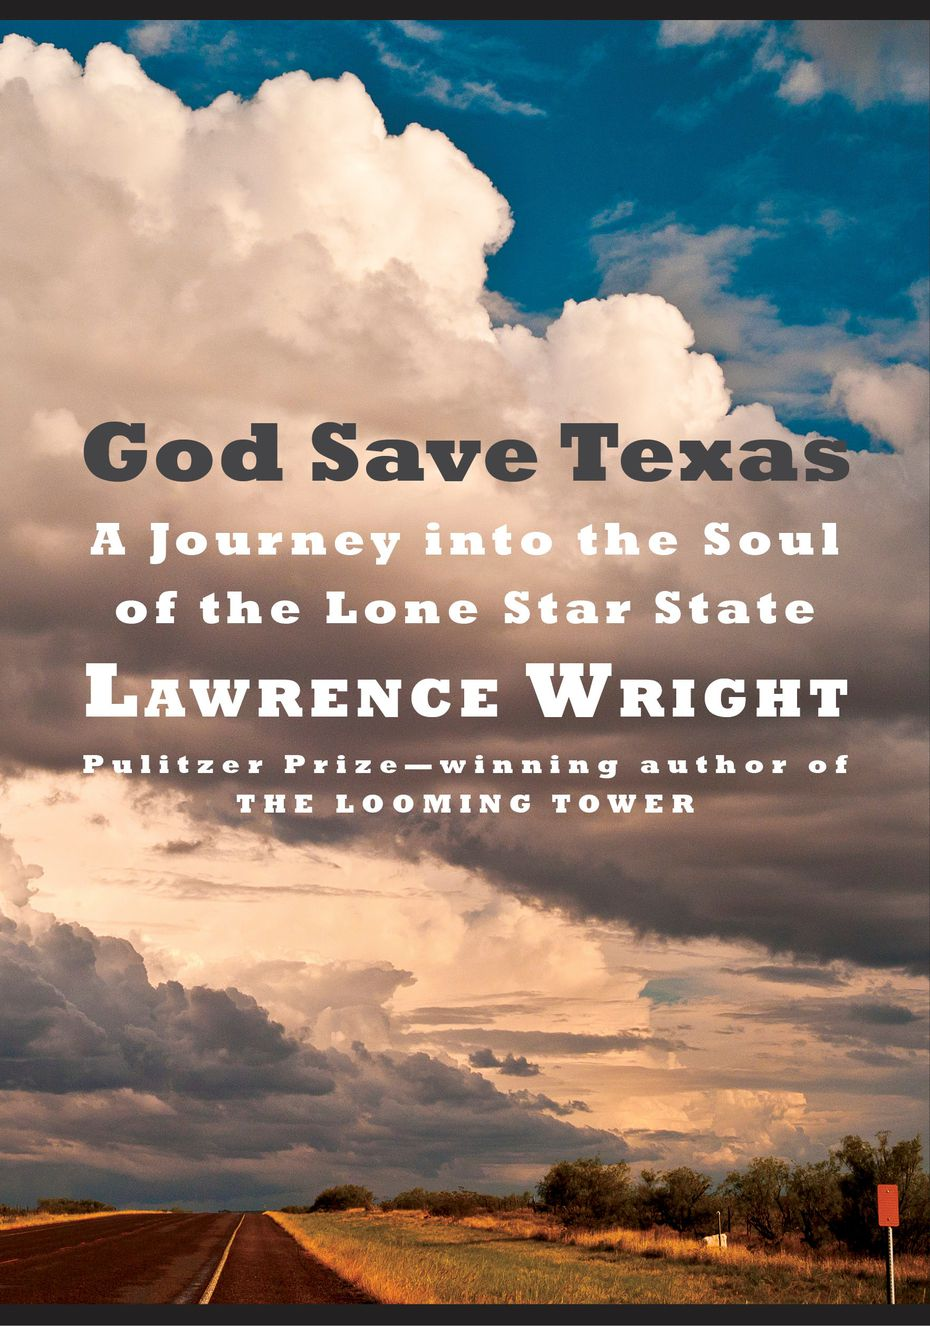 """God Save Texas"" by Lawrence Wright serves simultaneously as a love letter to the state and a critique of its most dangerous myths."